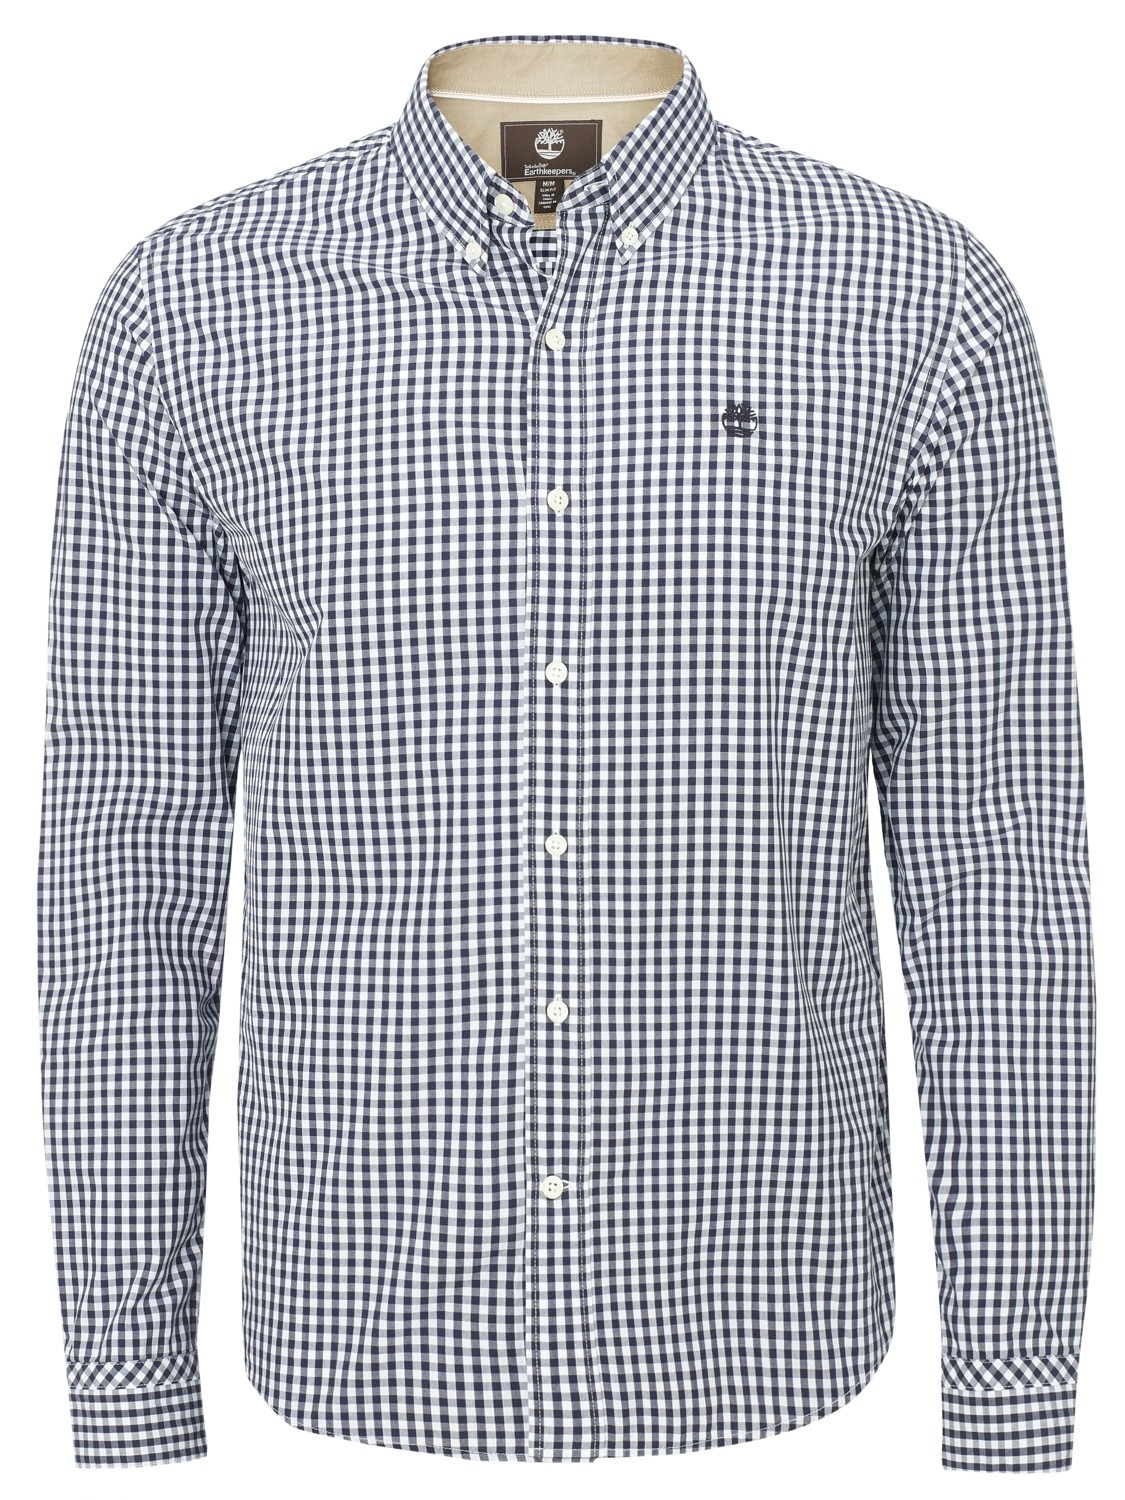 timberland earthkeepers gingham meriden shirt in blue for